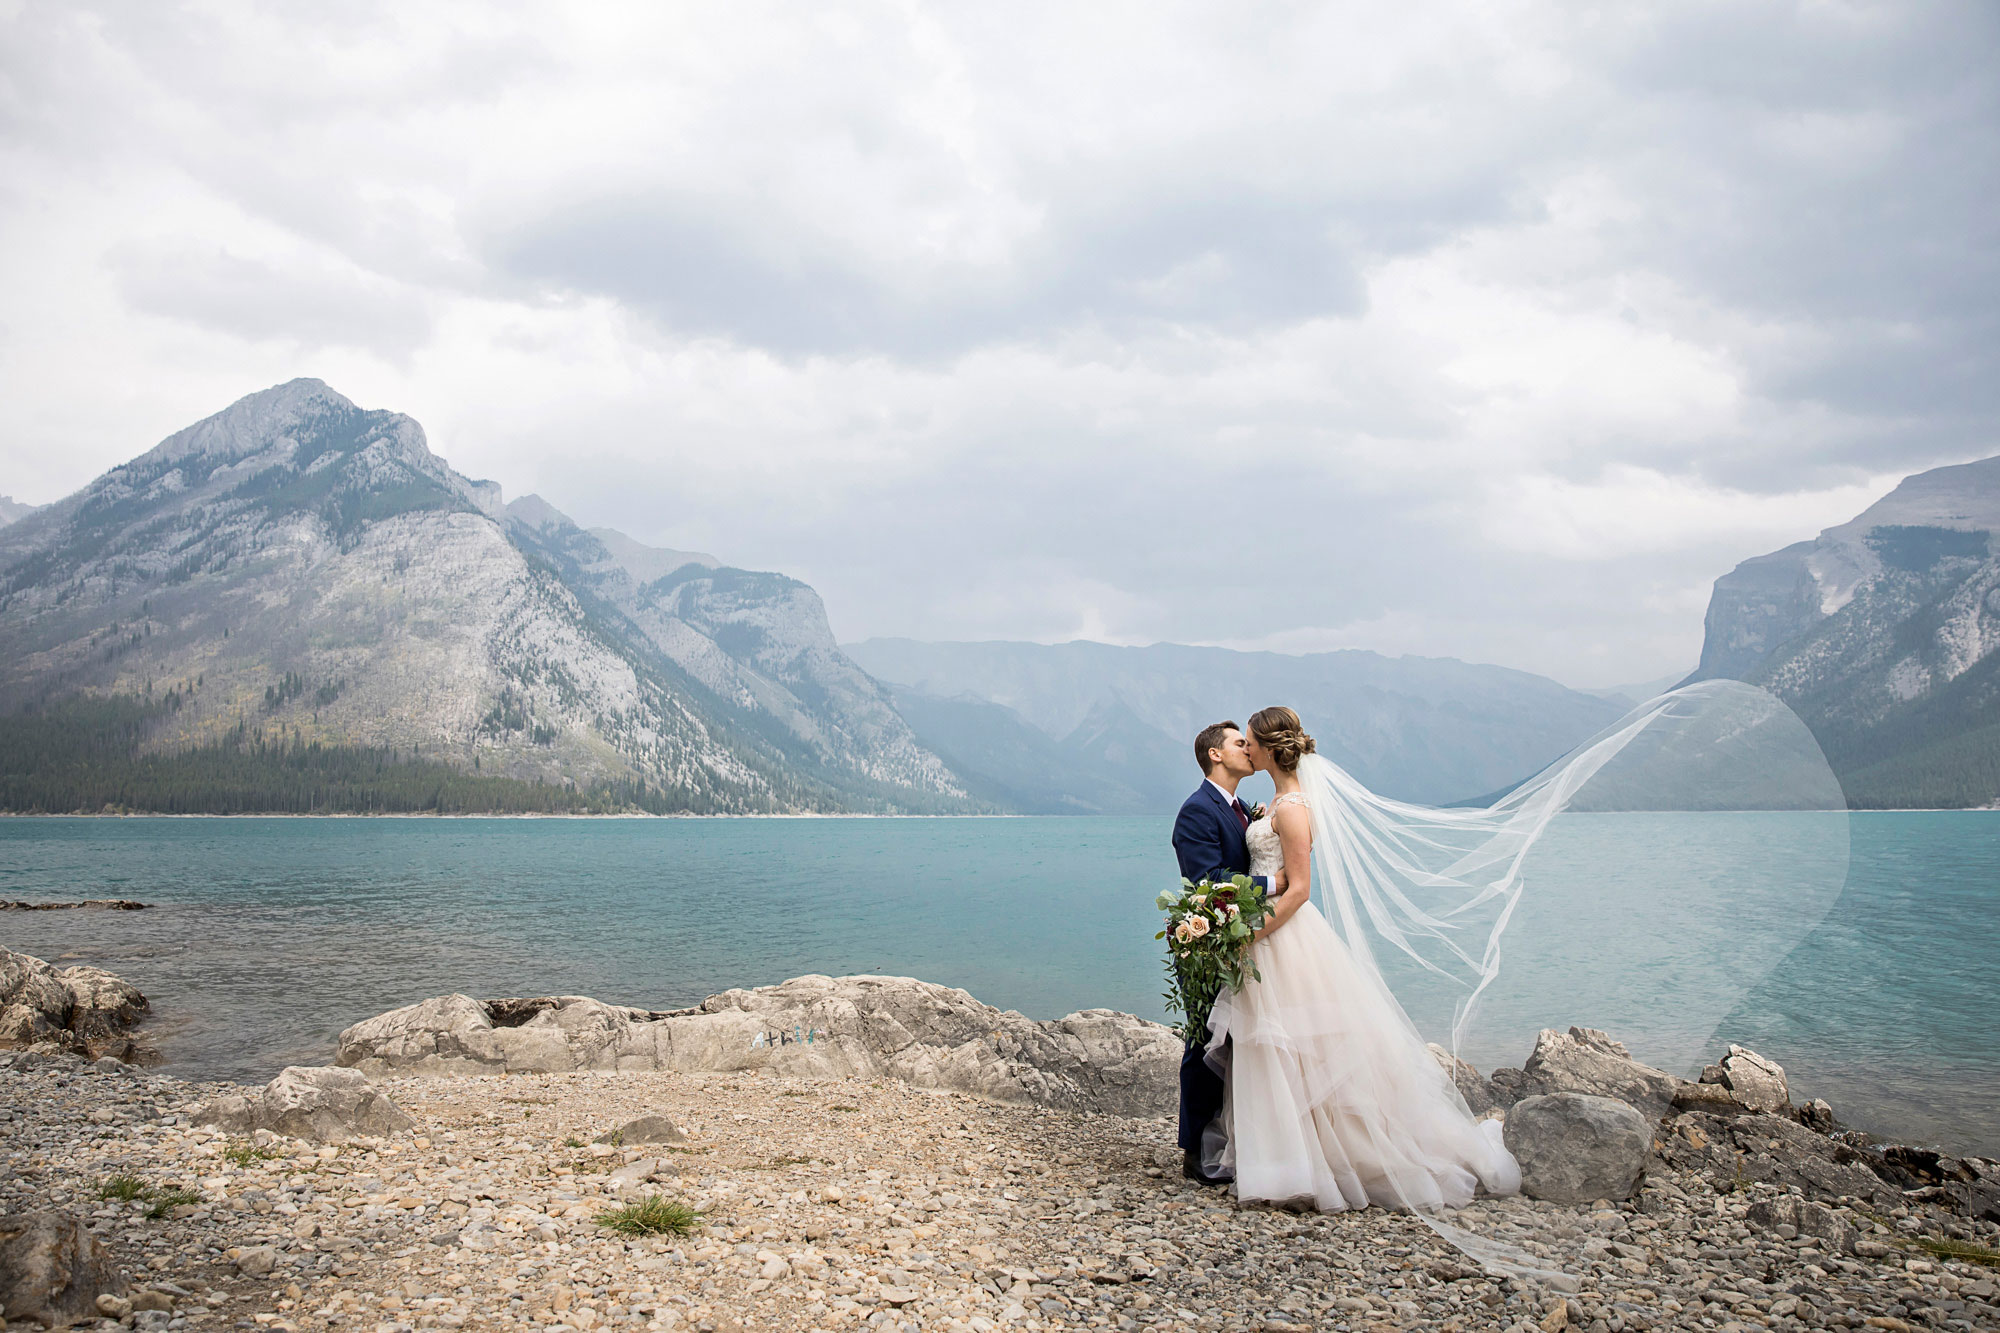 A Beautiful Mountain Wedding in Banff, Alberta,Canada